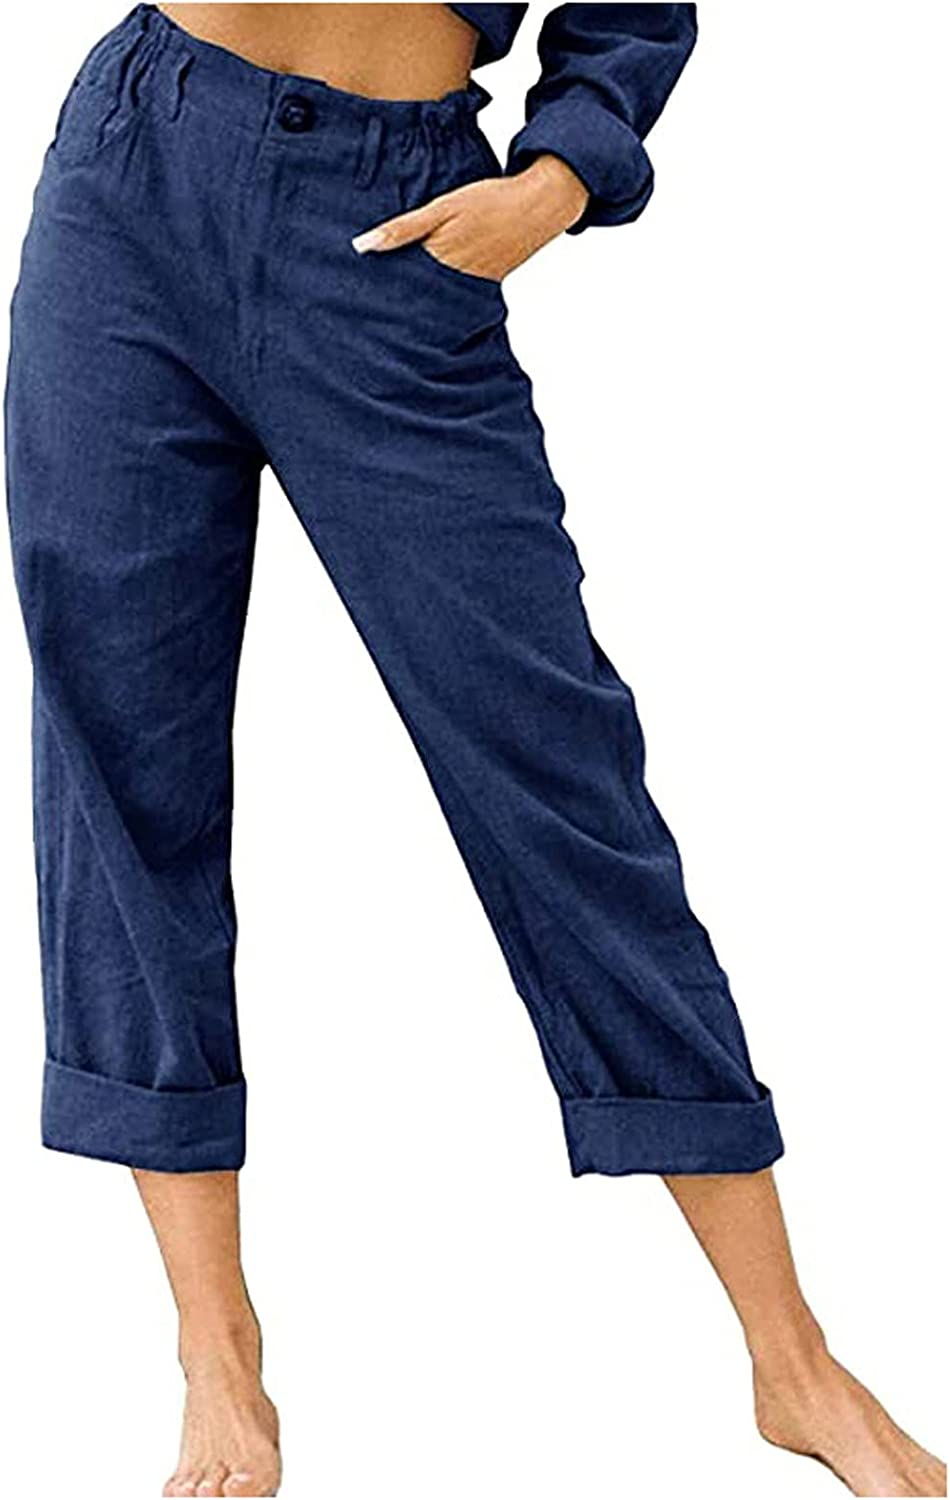 SUNNART Women's Capris Pants Summer Casual Cropped Pants Loose Casual Pants Trousers with Pockets